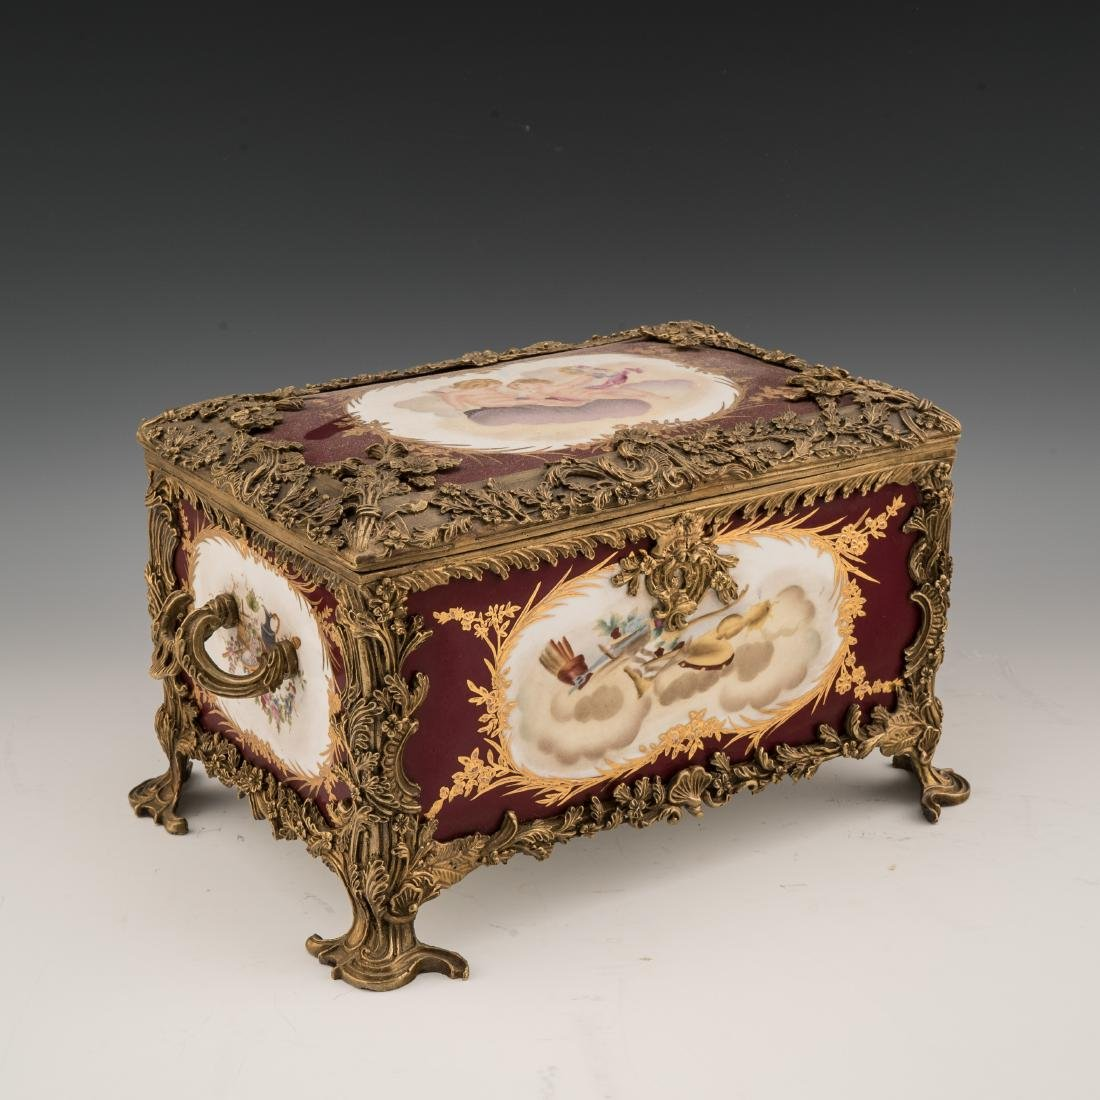 A SEVRES-STYLE PORCELAIN AND BRONZE TABLE CASKET